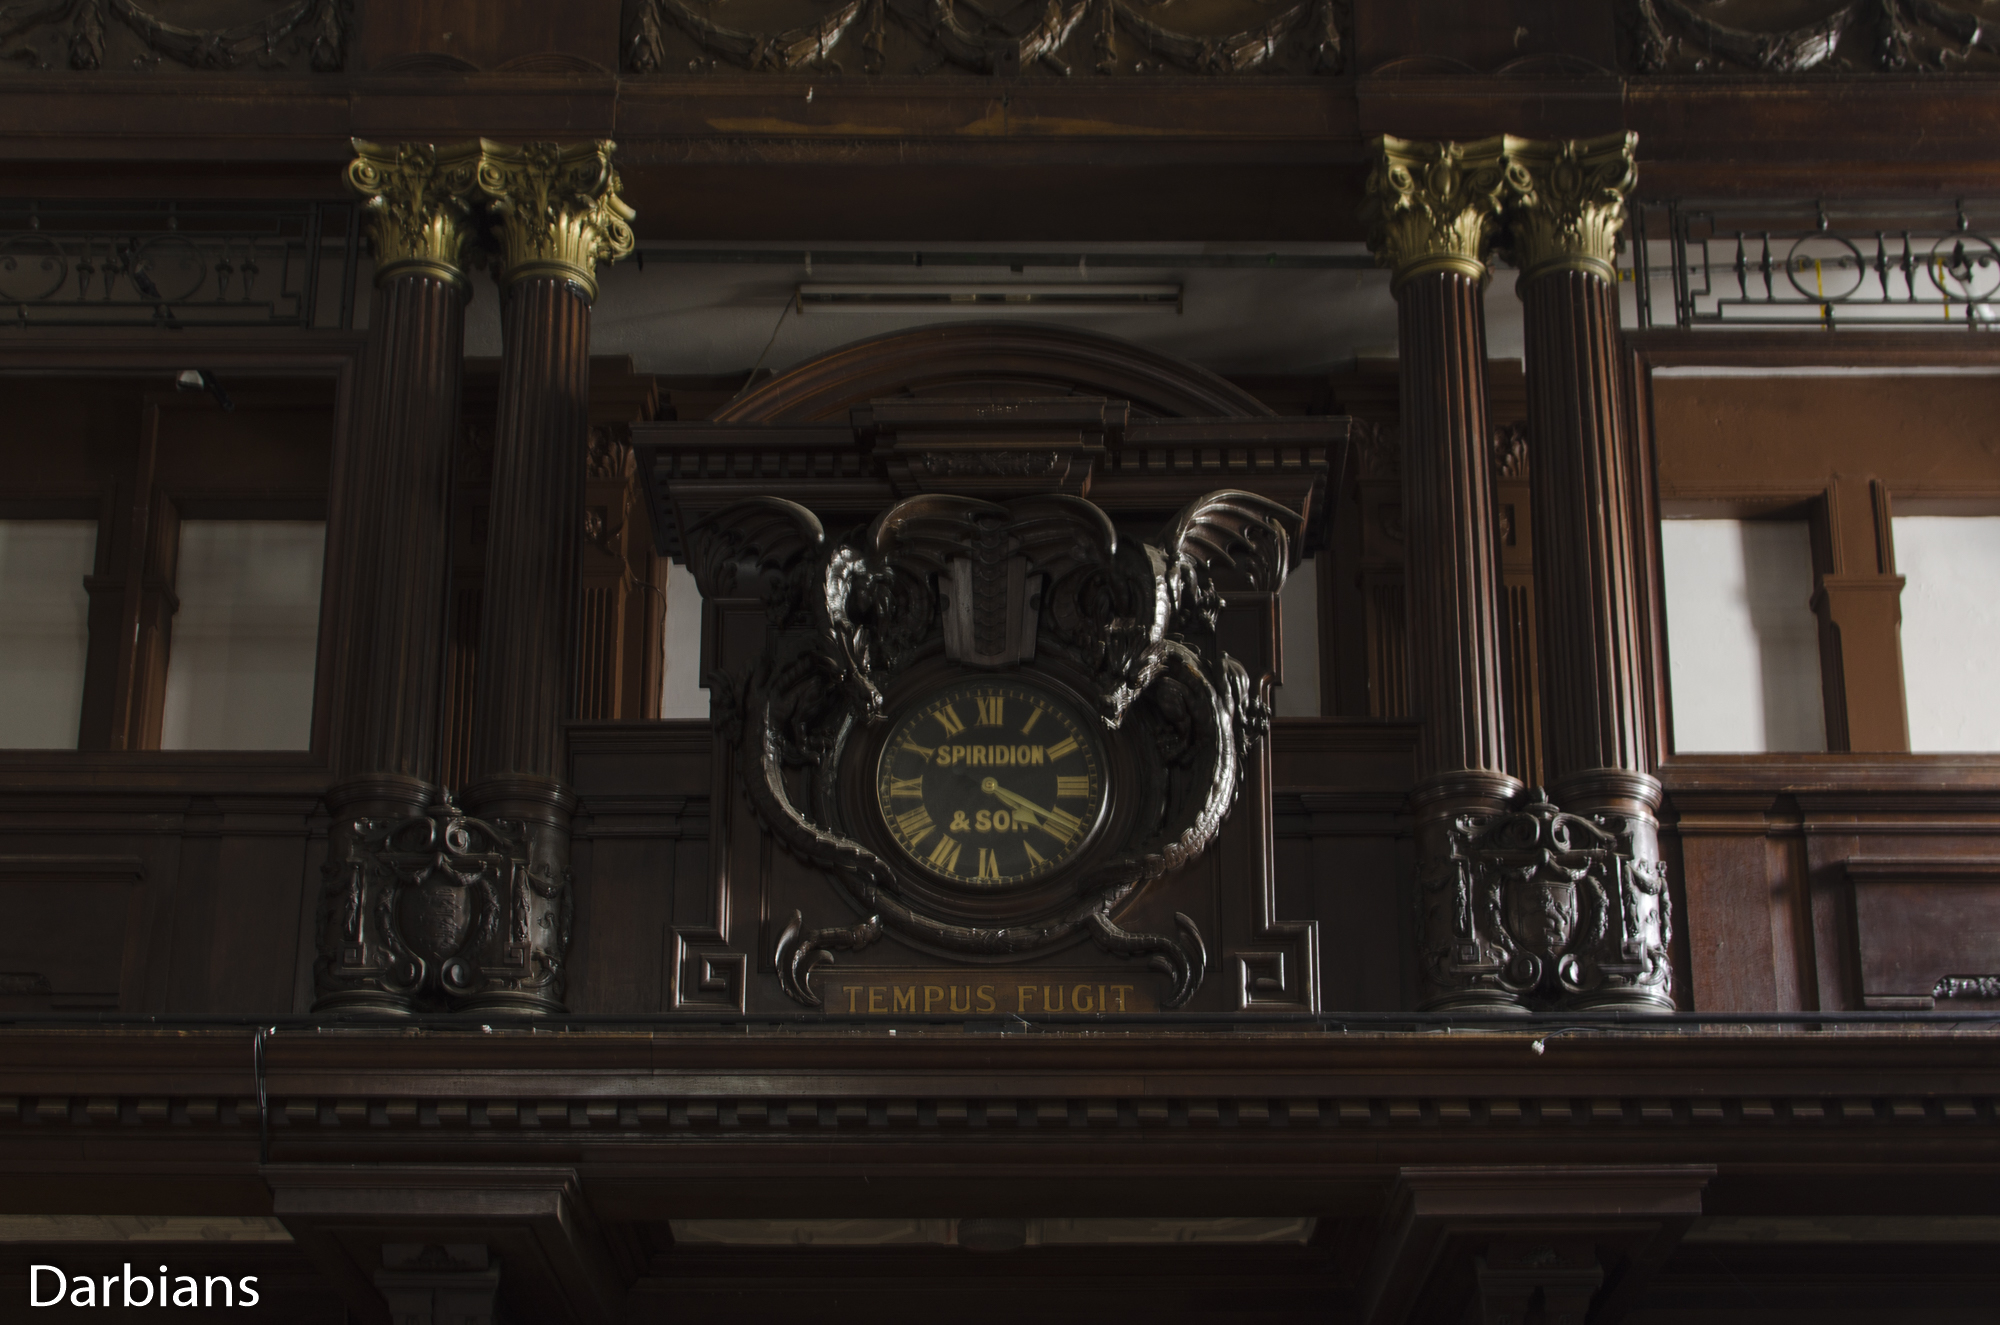 Cardiff Coal Exchange. Clock in the main hall.